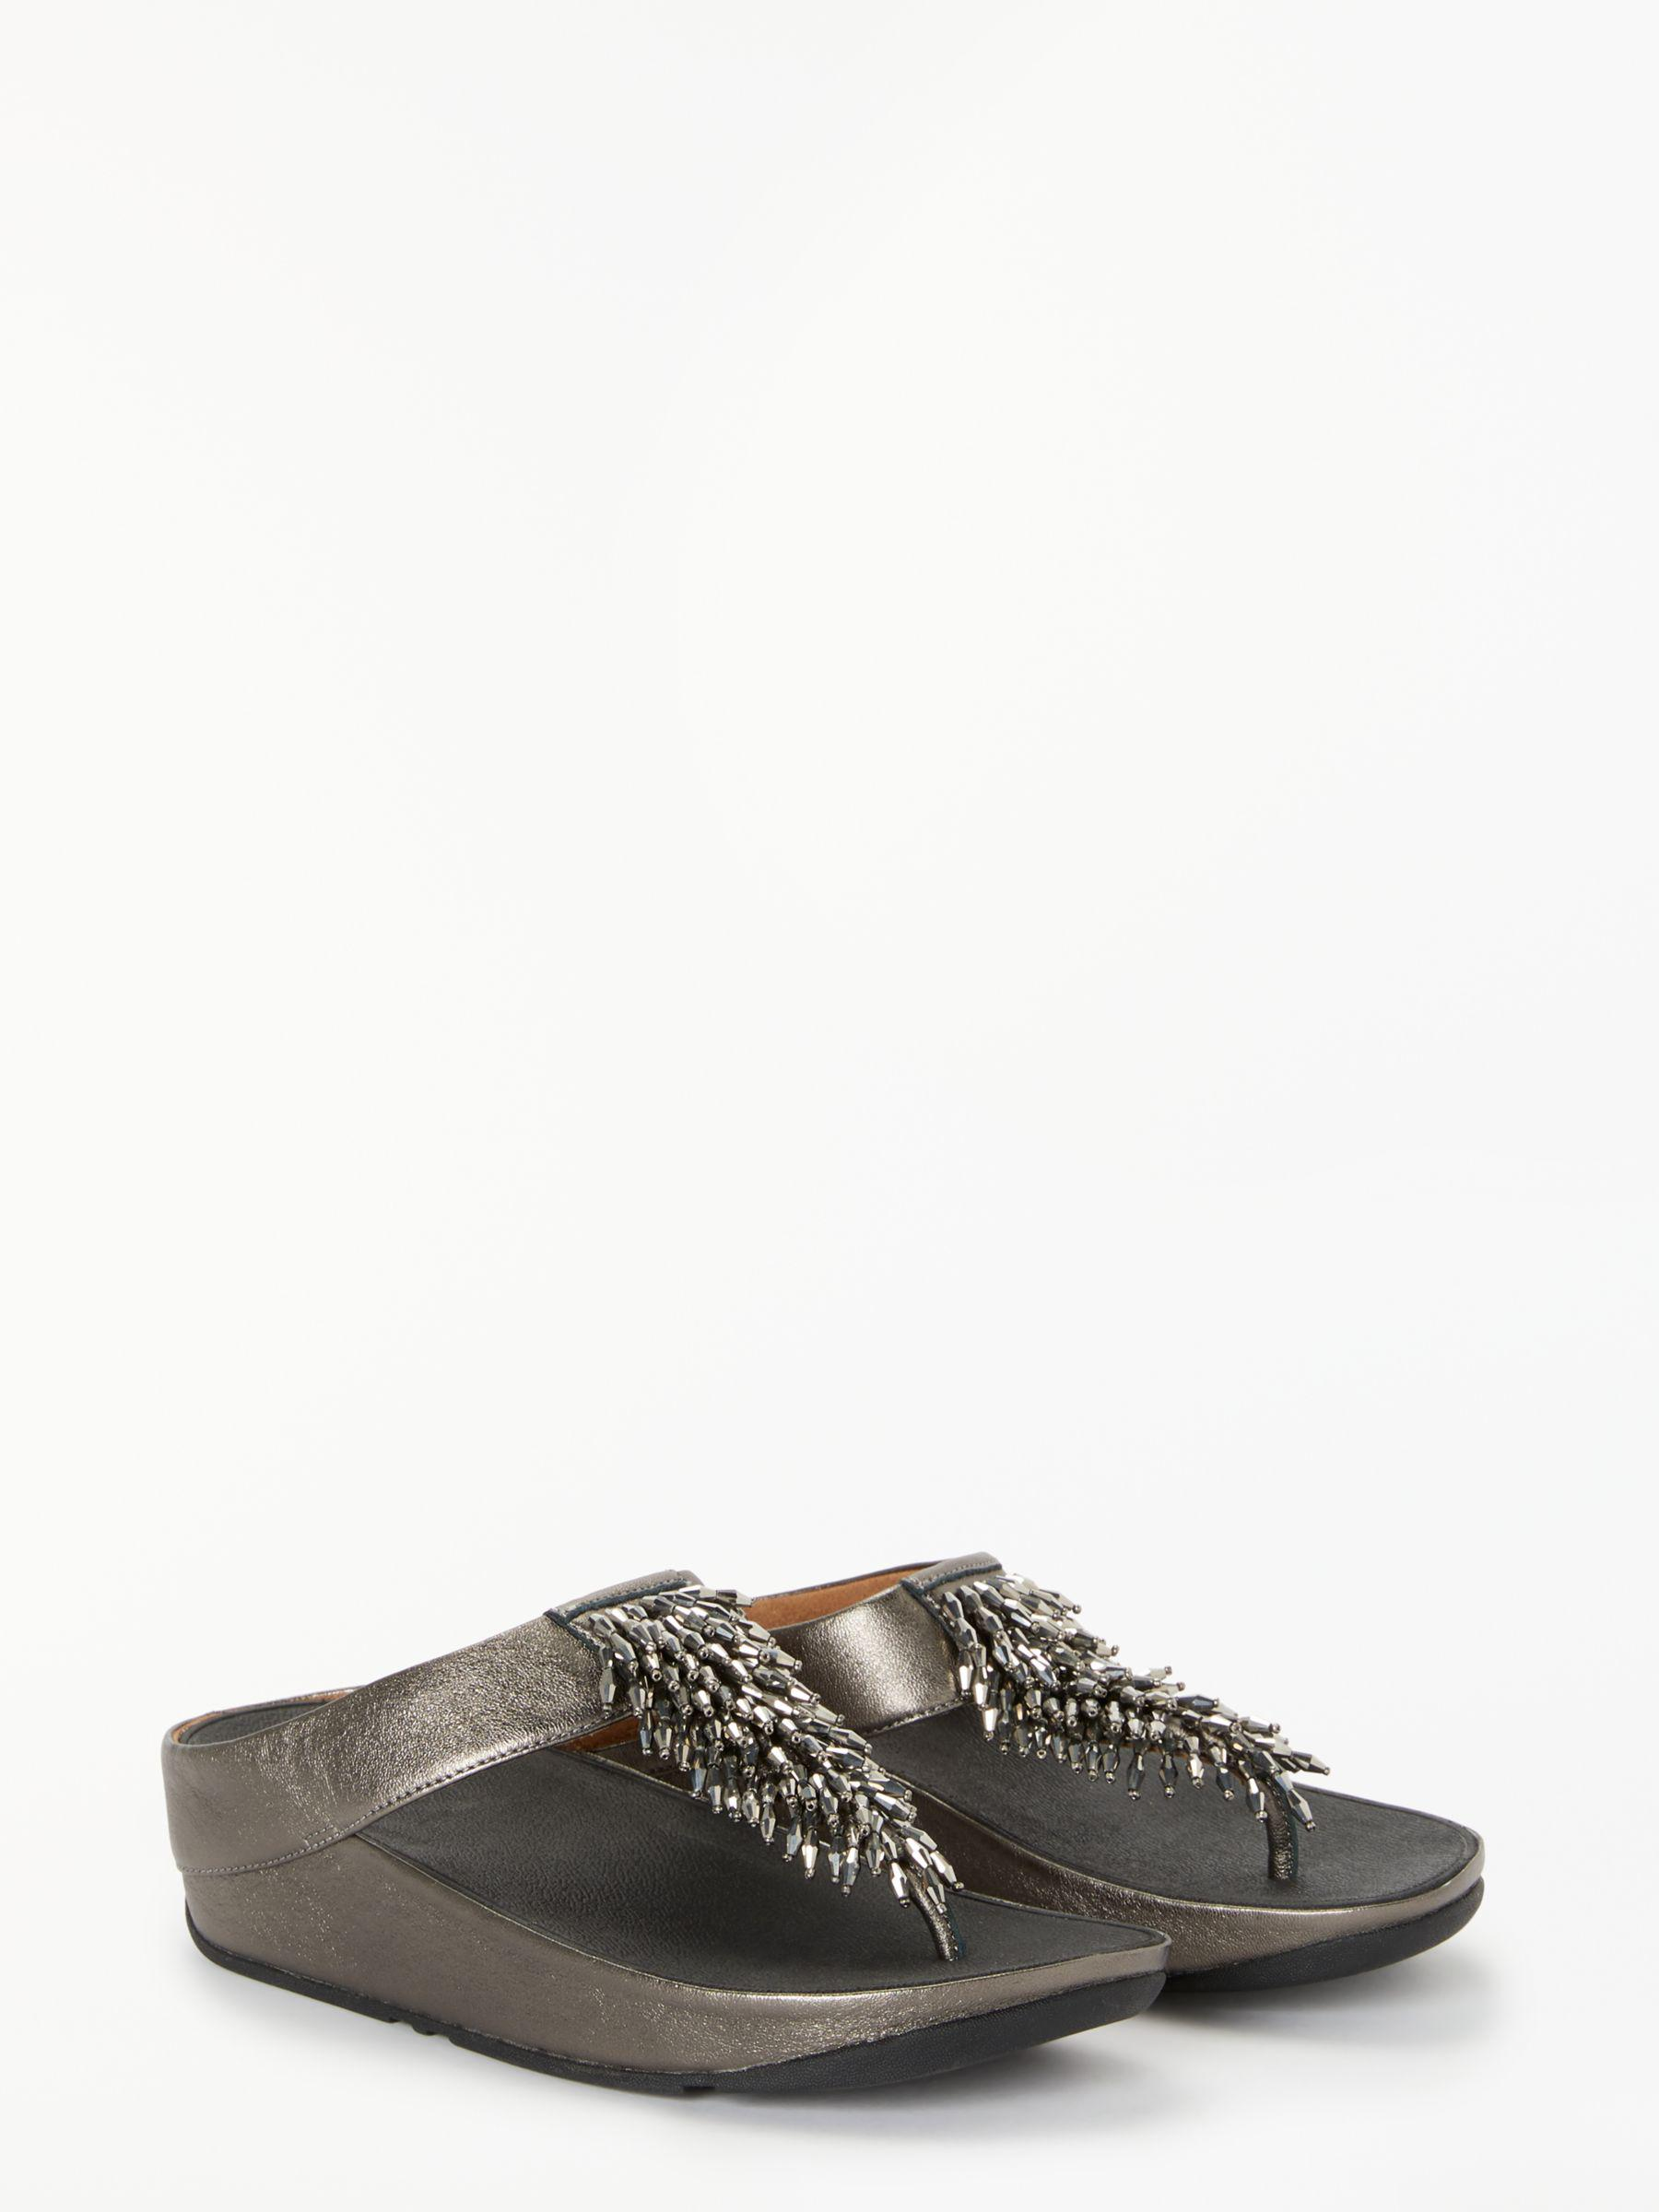 4c3843e3a Fitflop Rumba Embellished Toe Post Sandals - Lyst